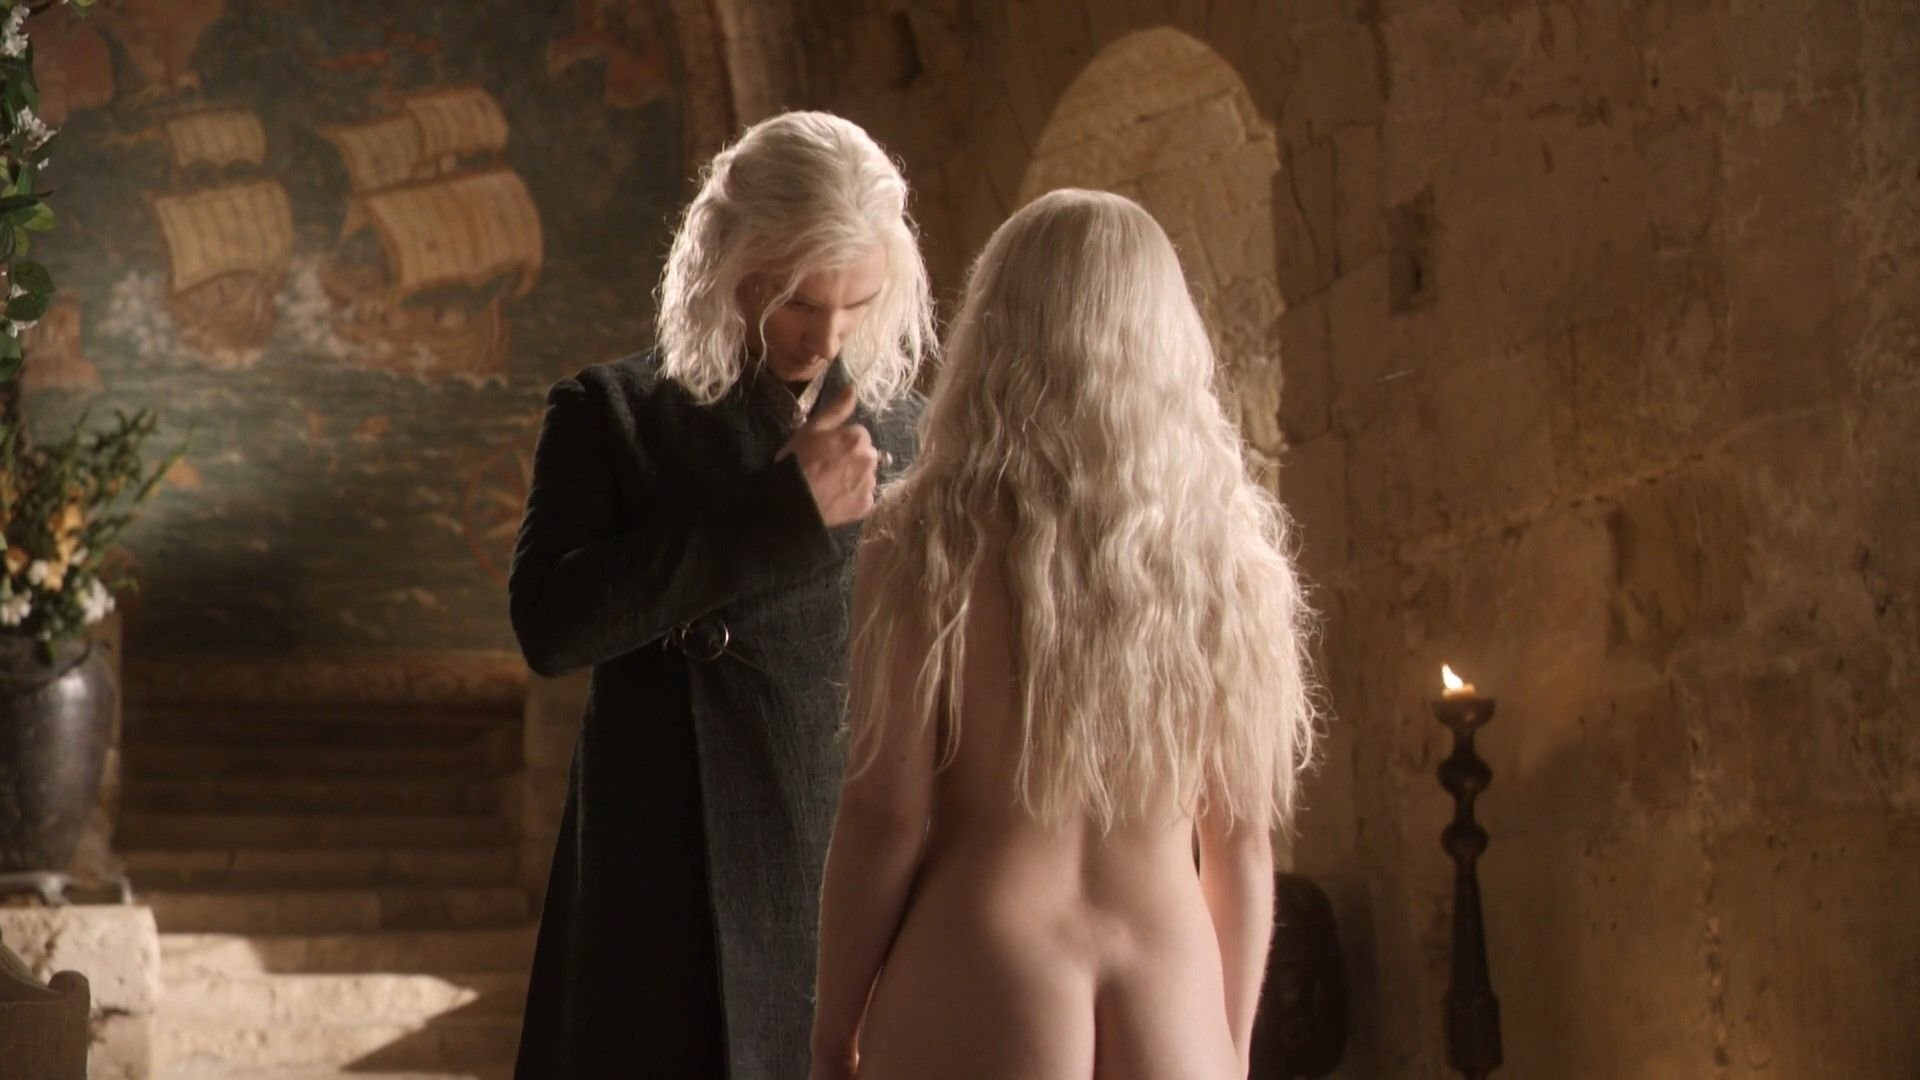 Emilia clarke stripped exposing her breasts 10